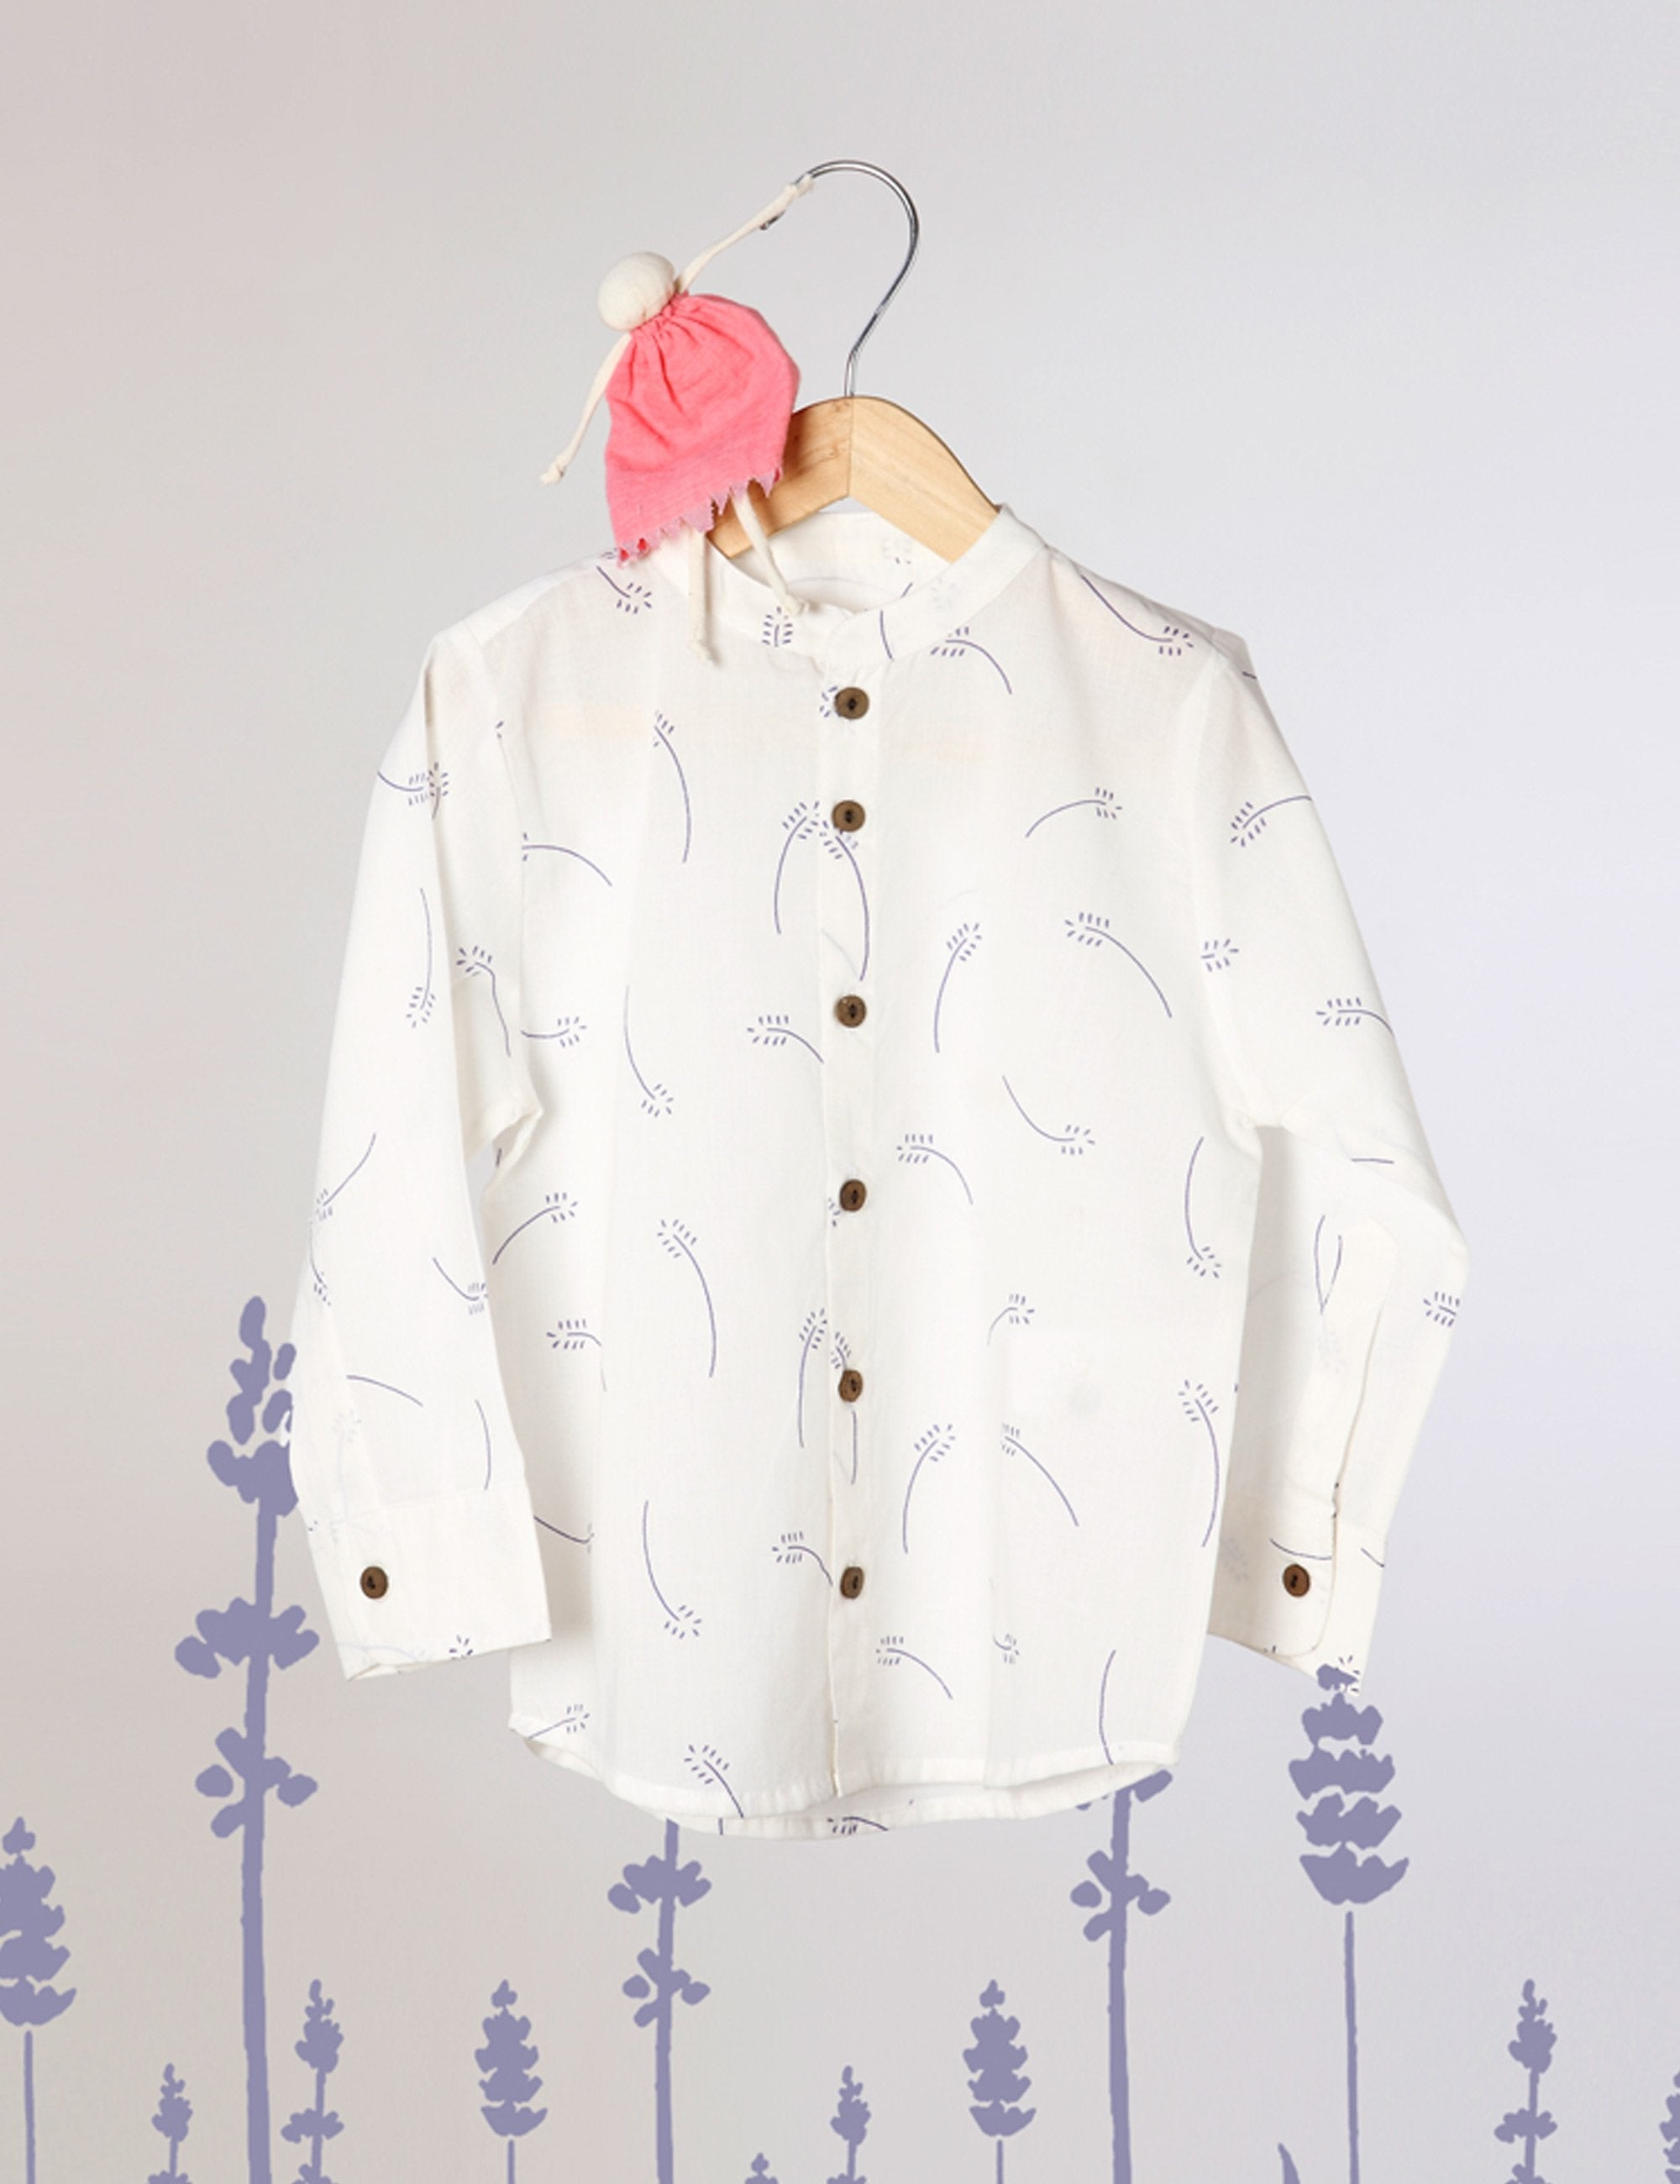 Barefoot Boy - Chinese Collar Shirt In White with Lavender Floral Print